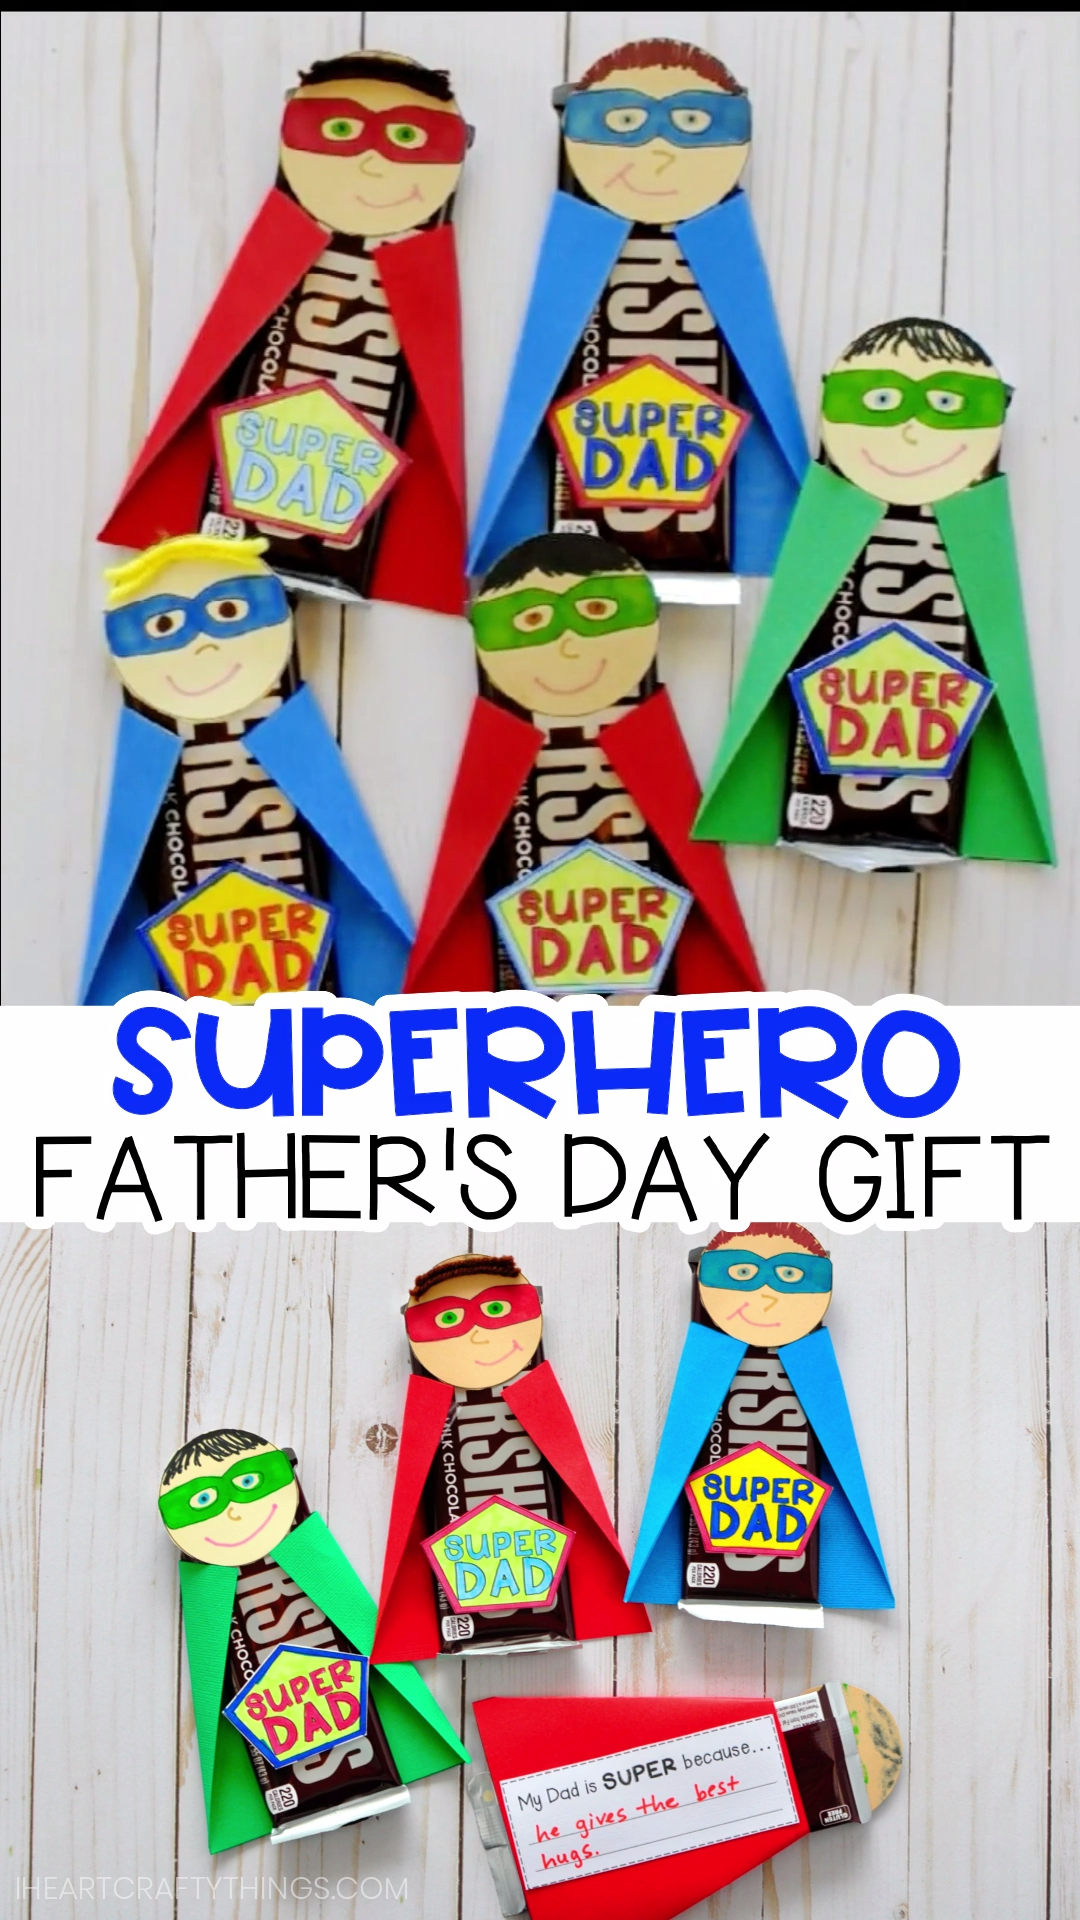 How to Make a Superhero Father's Day Gift #superherogifts